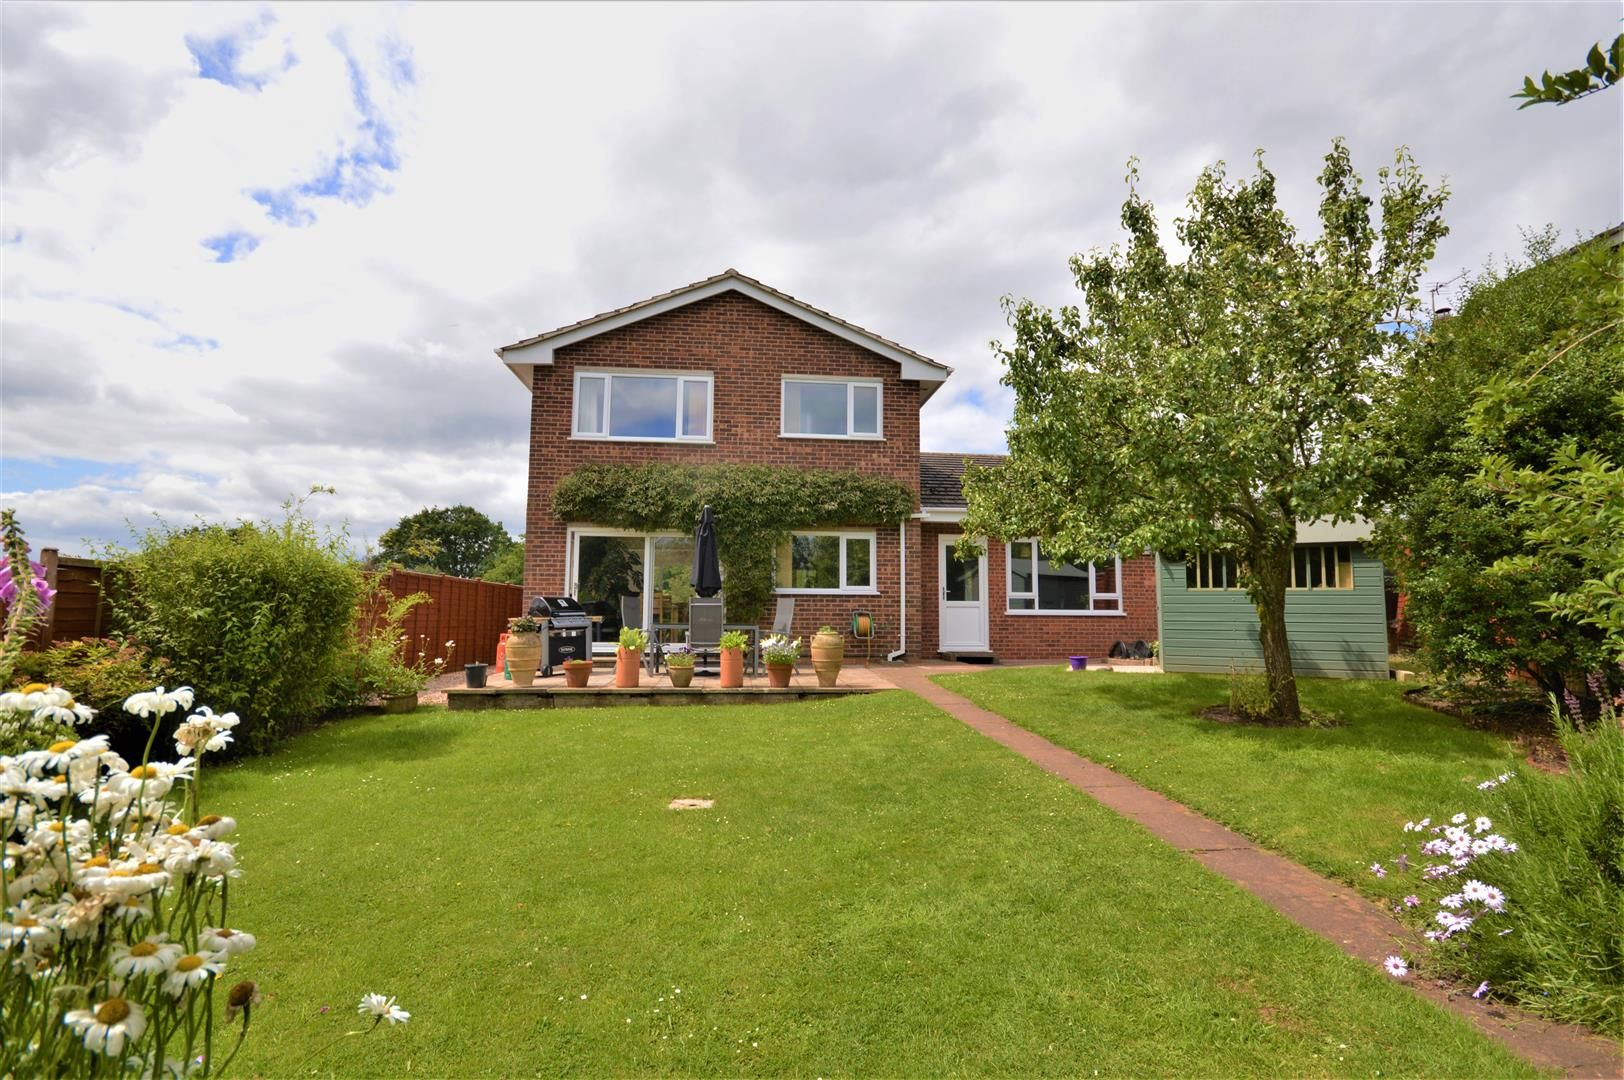 3 bed detached for sale in Kings Caple 16